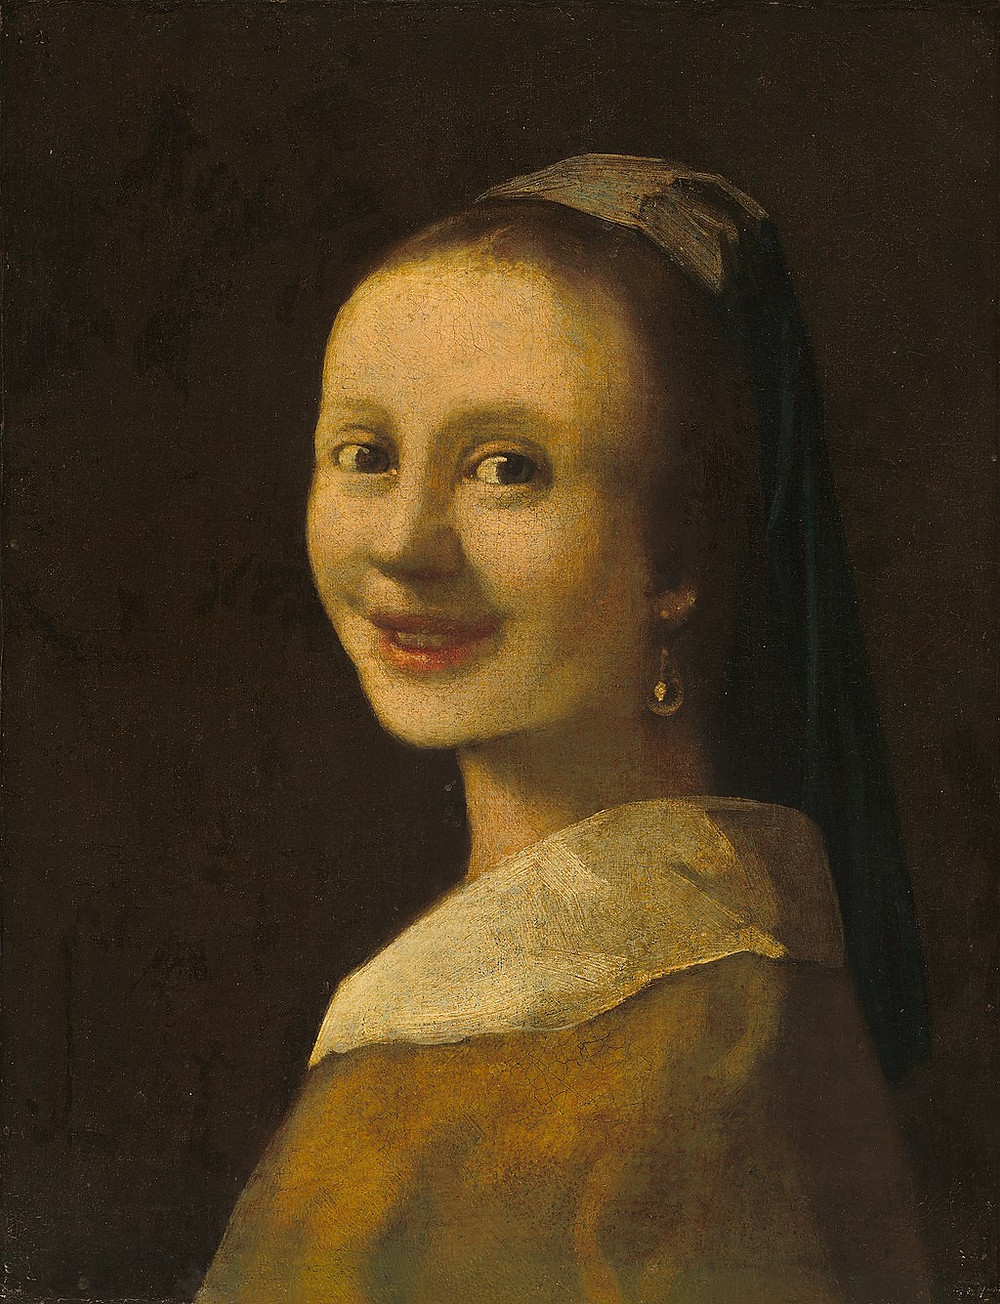 Smiling Girl possible forgery